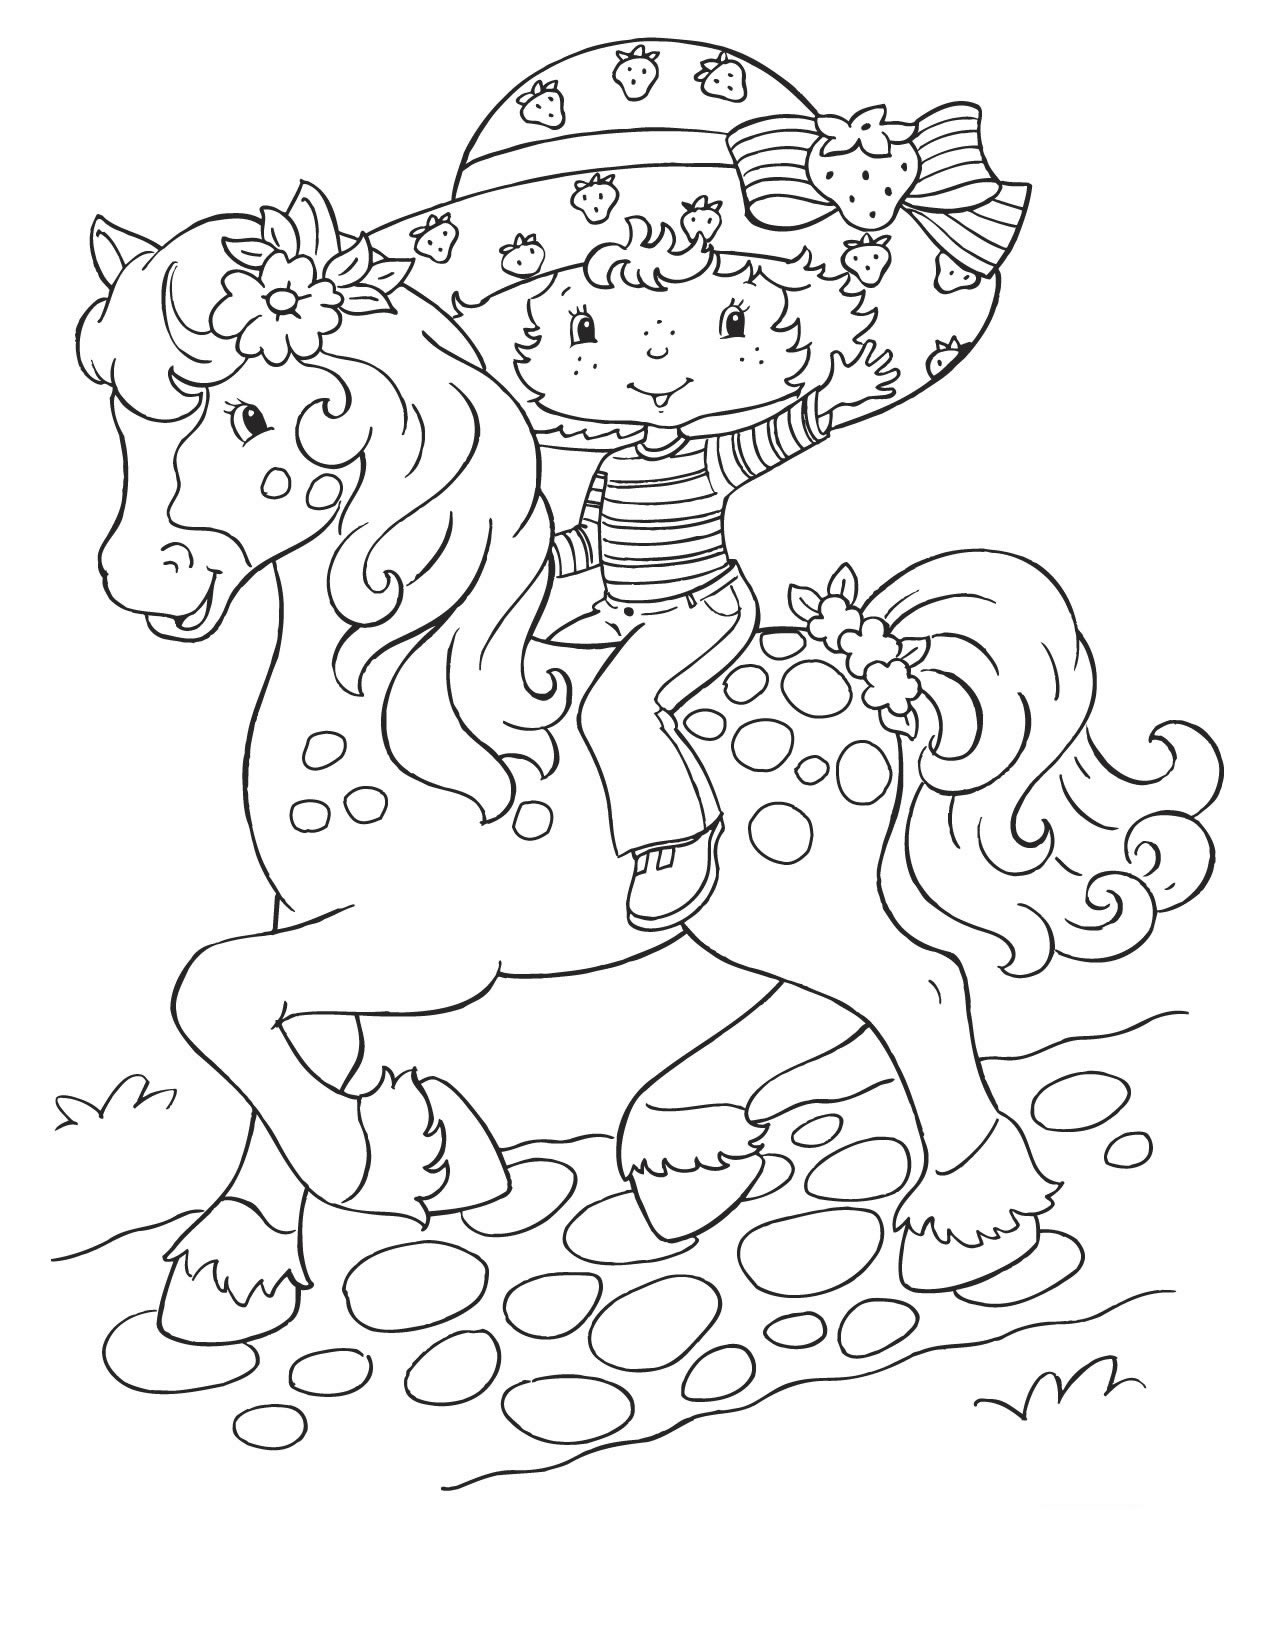 coloring pages of strawberry shortcake strawberry shortcake coloring pages coloring page base pages strawberry of coloring shortcake